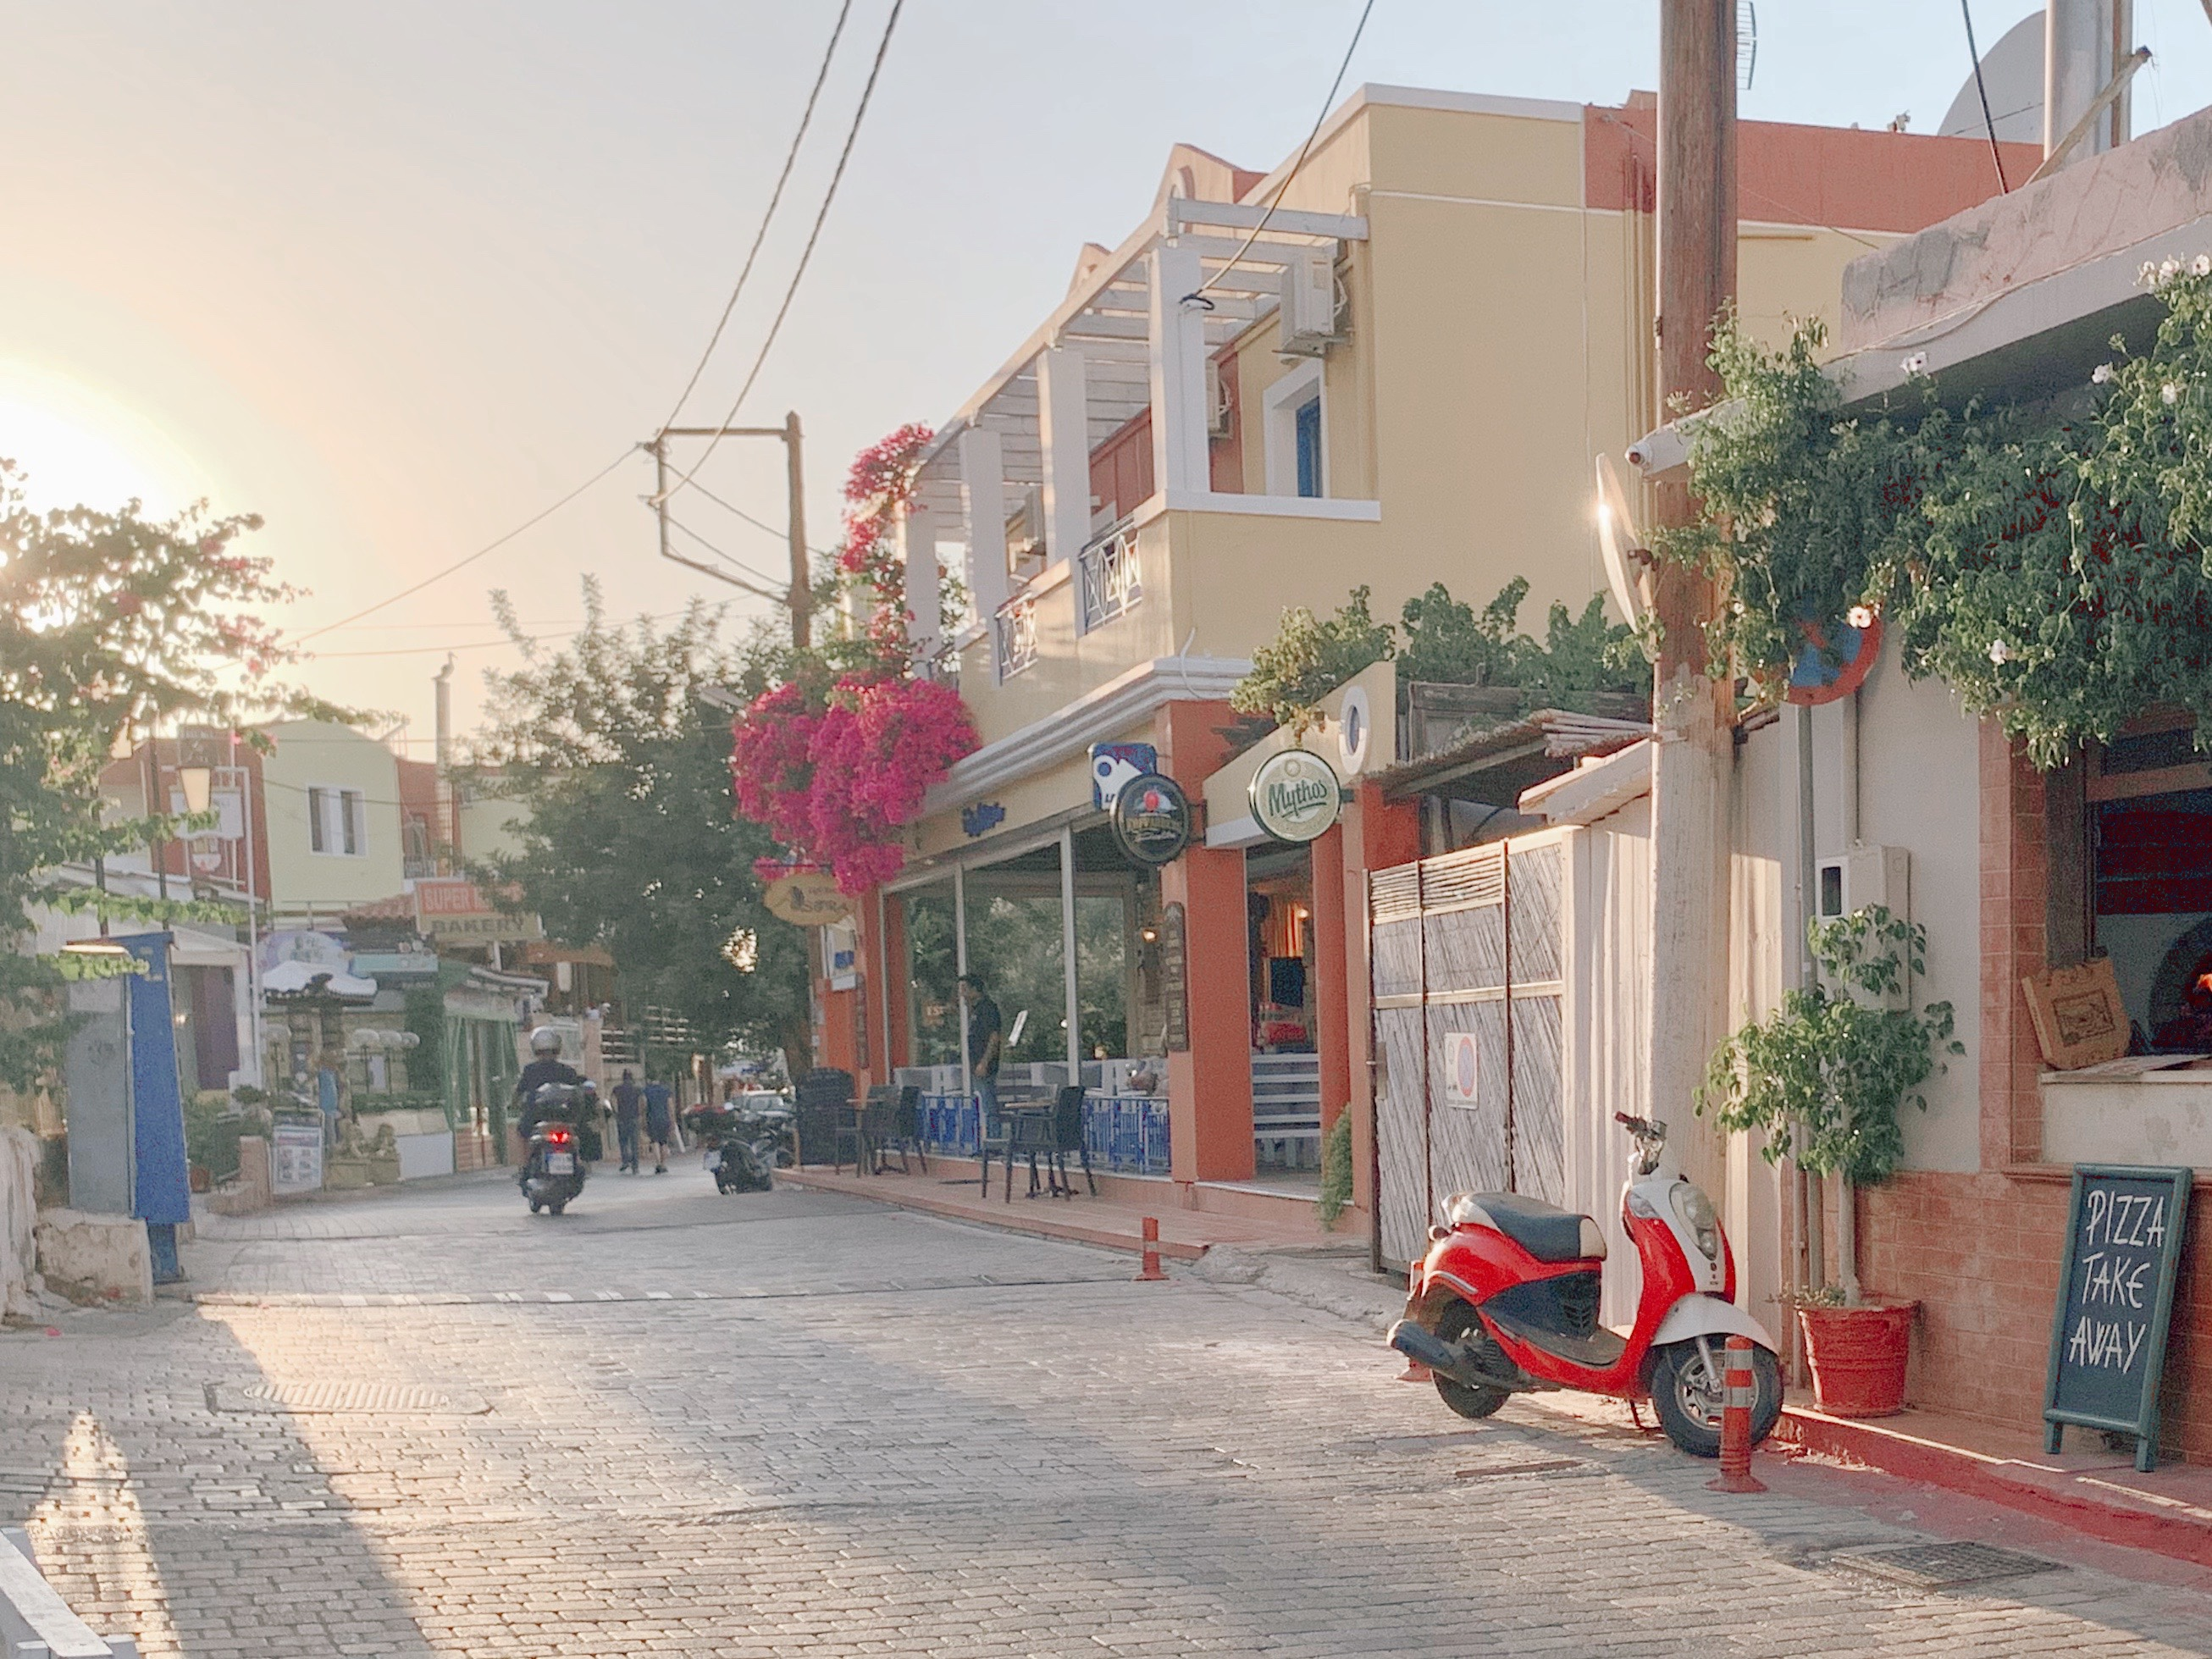 acs 0141 - Crete, Greece